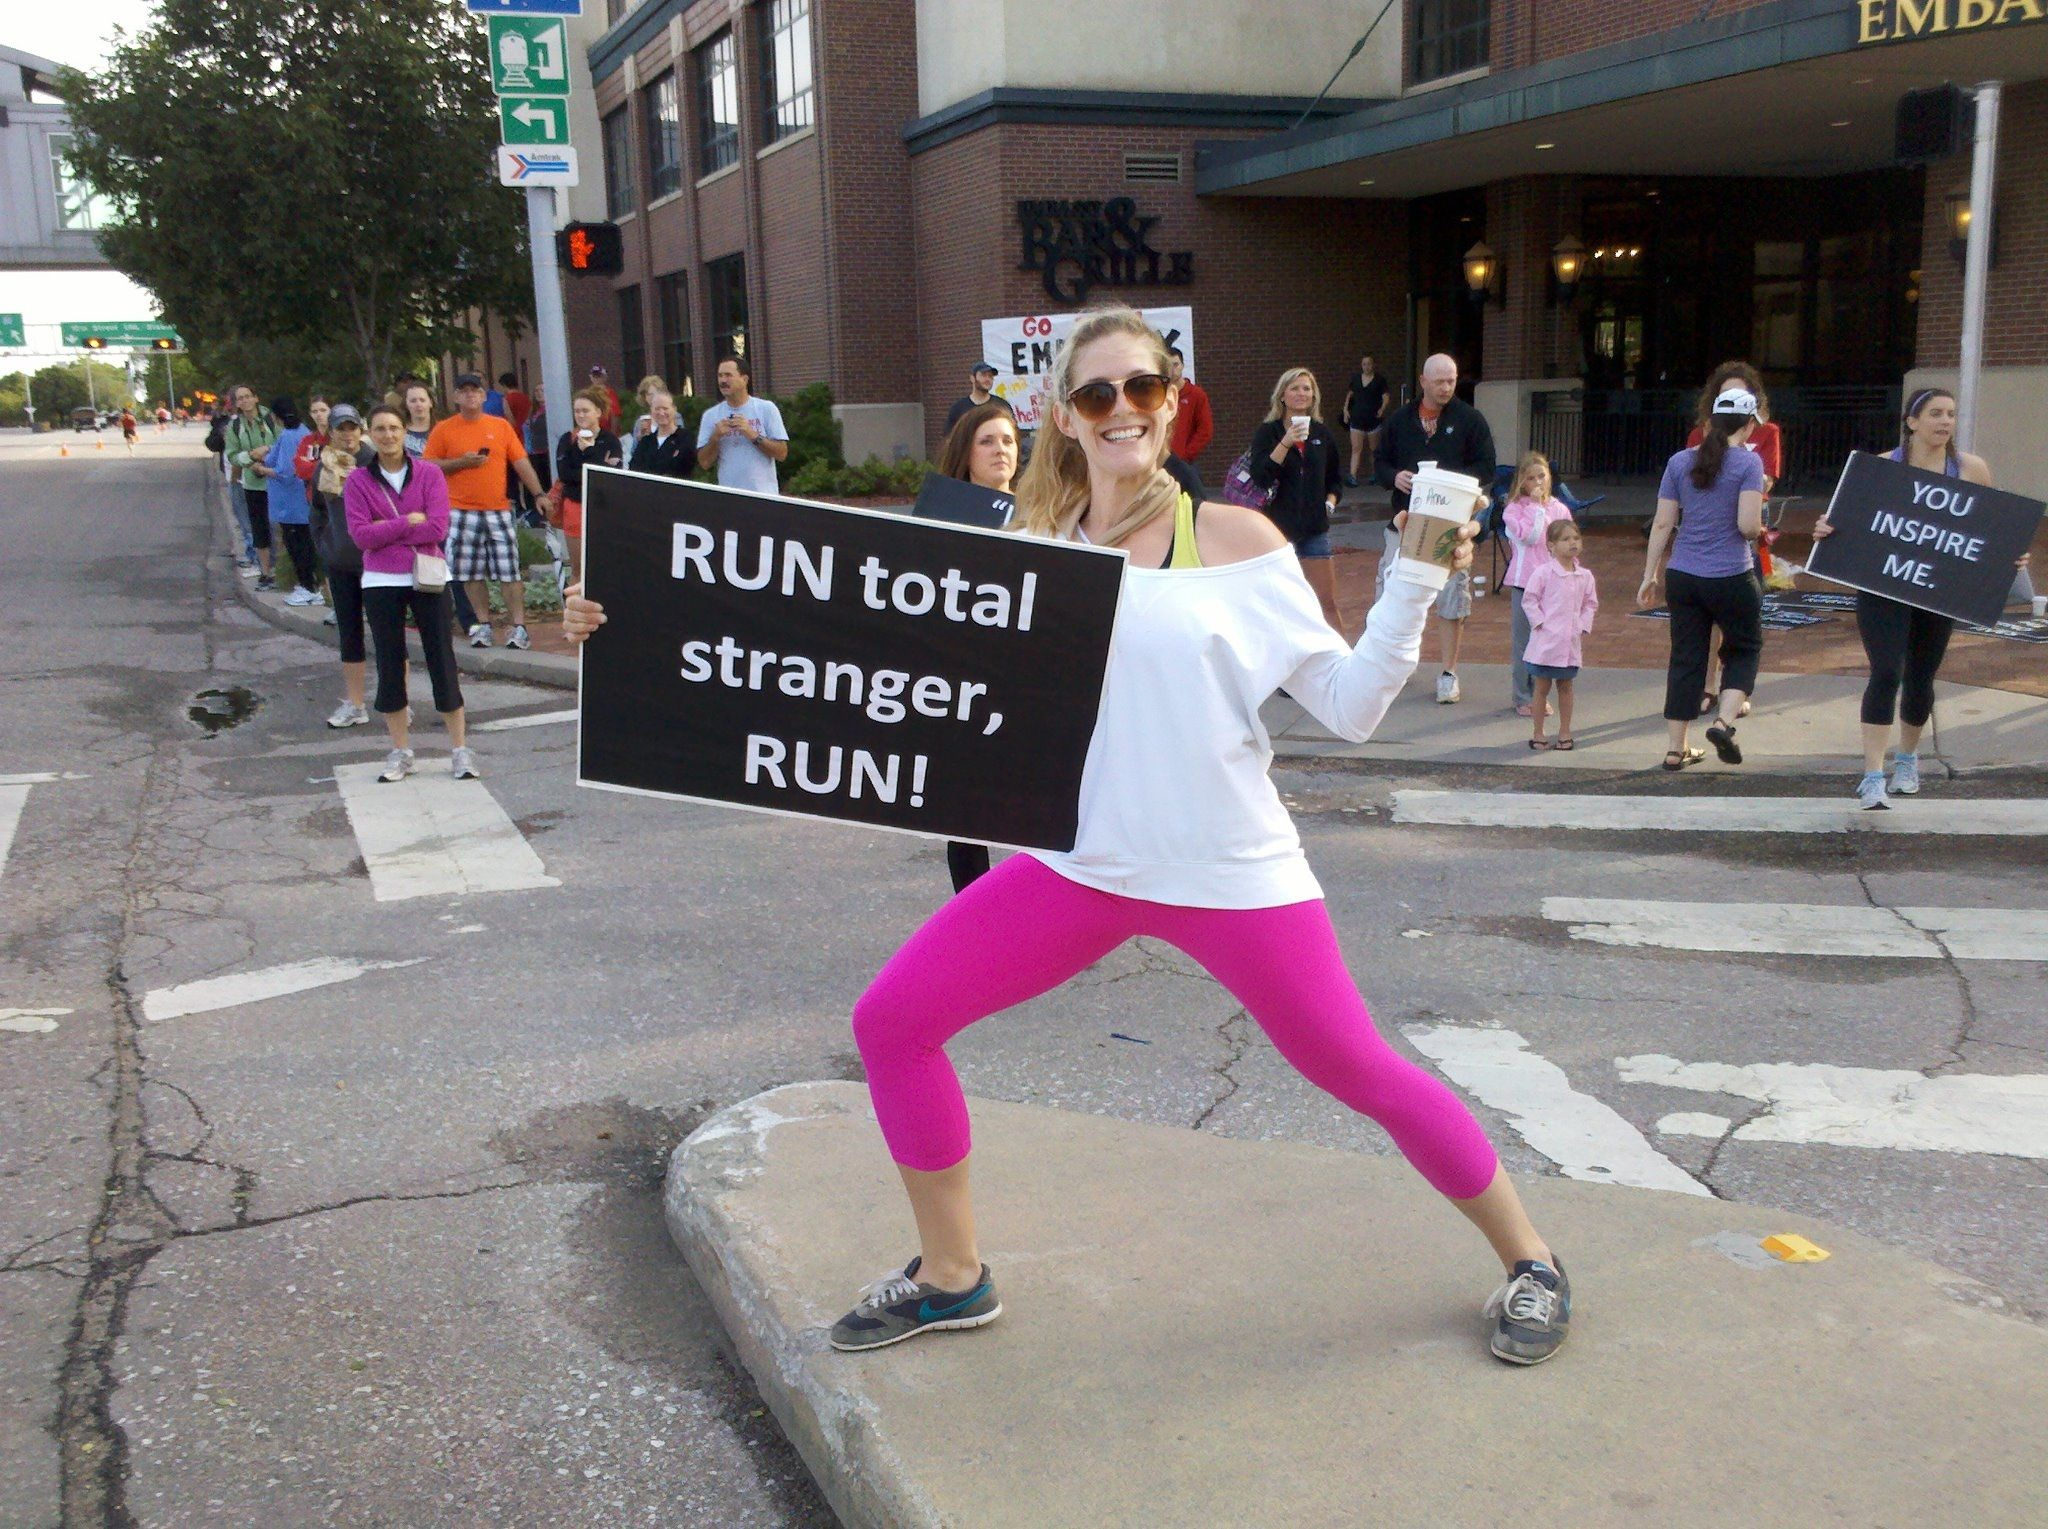 Best Funny Marathon Signs Ideas On Pinterest Running Signs - Seeing 23 hilarious street posters will make day